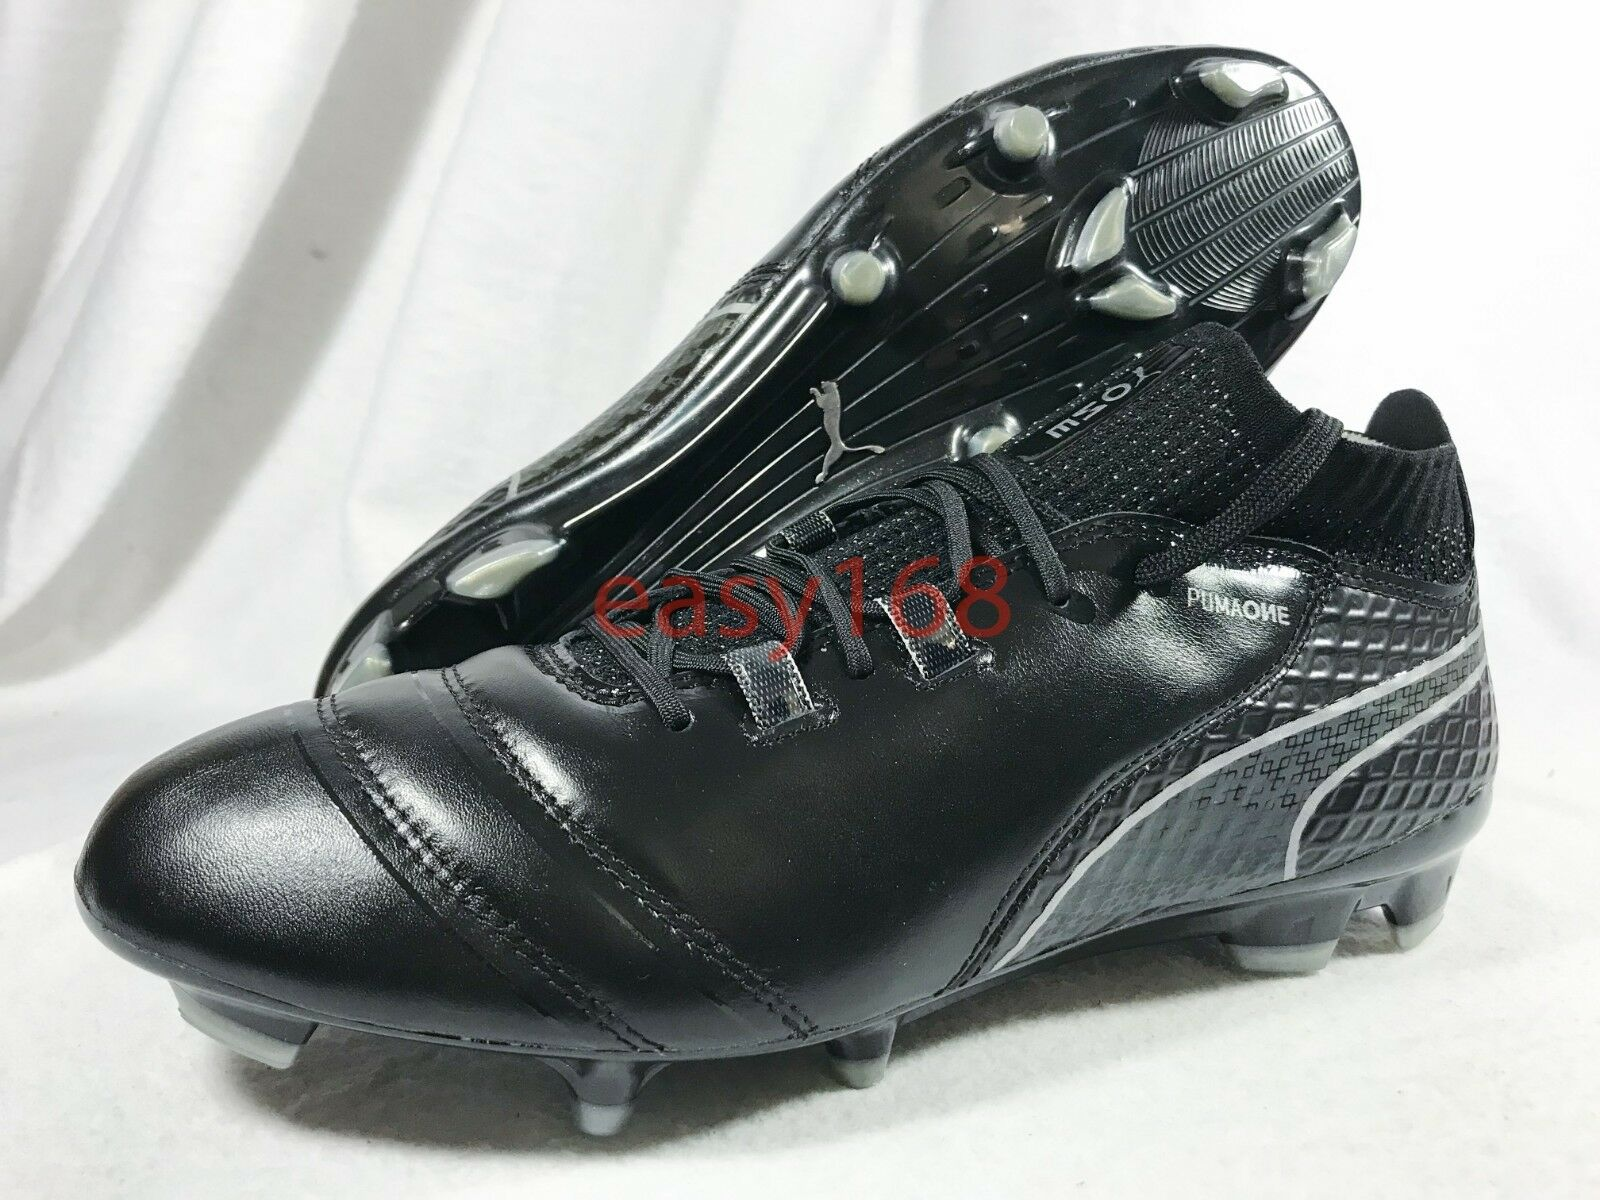 New Puma ONE 17.1 FG Sz 9 Mens 104062-05 Black Leather Soccer Cleats 42 Boots